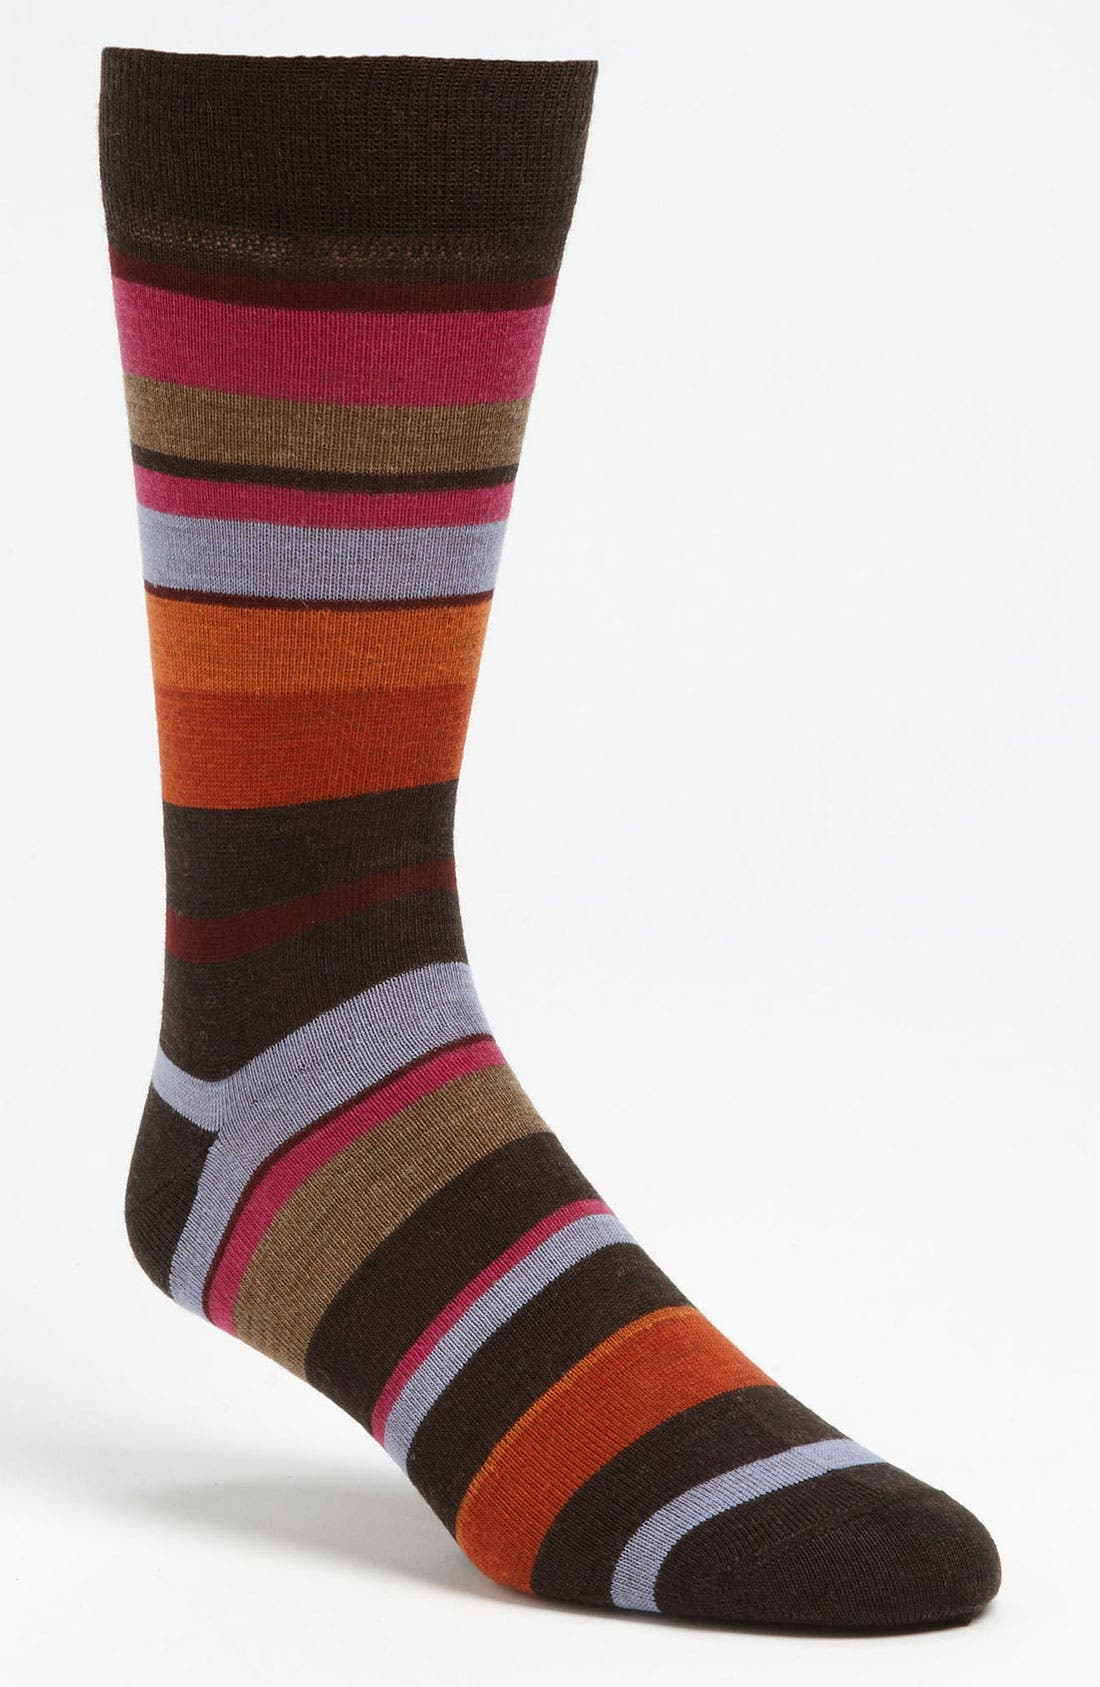 Alternate Image 1 Selected - Lorenzo Uomo Stripe Dress Socks (3 for $27)